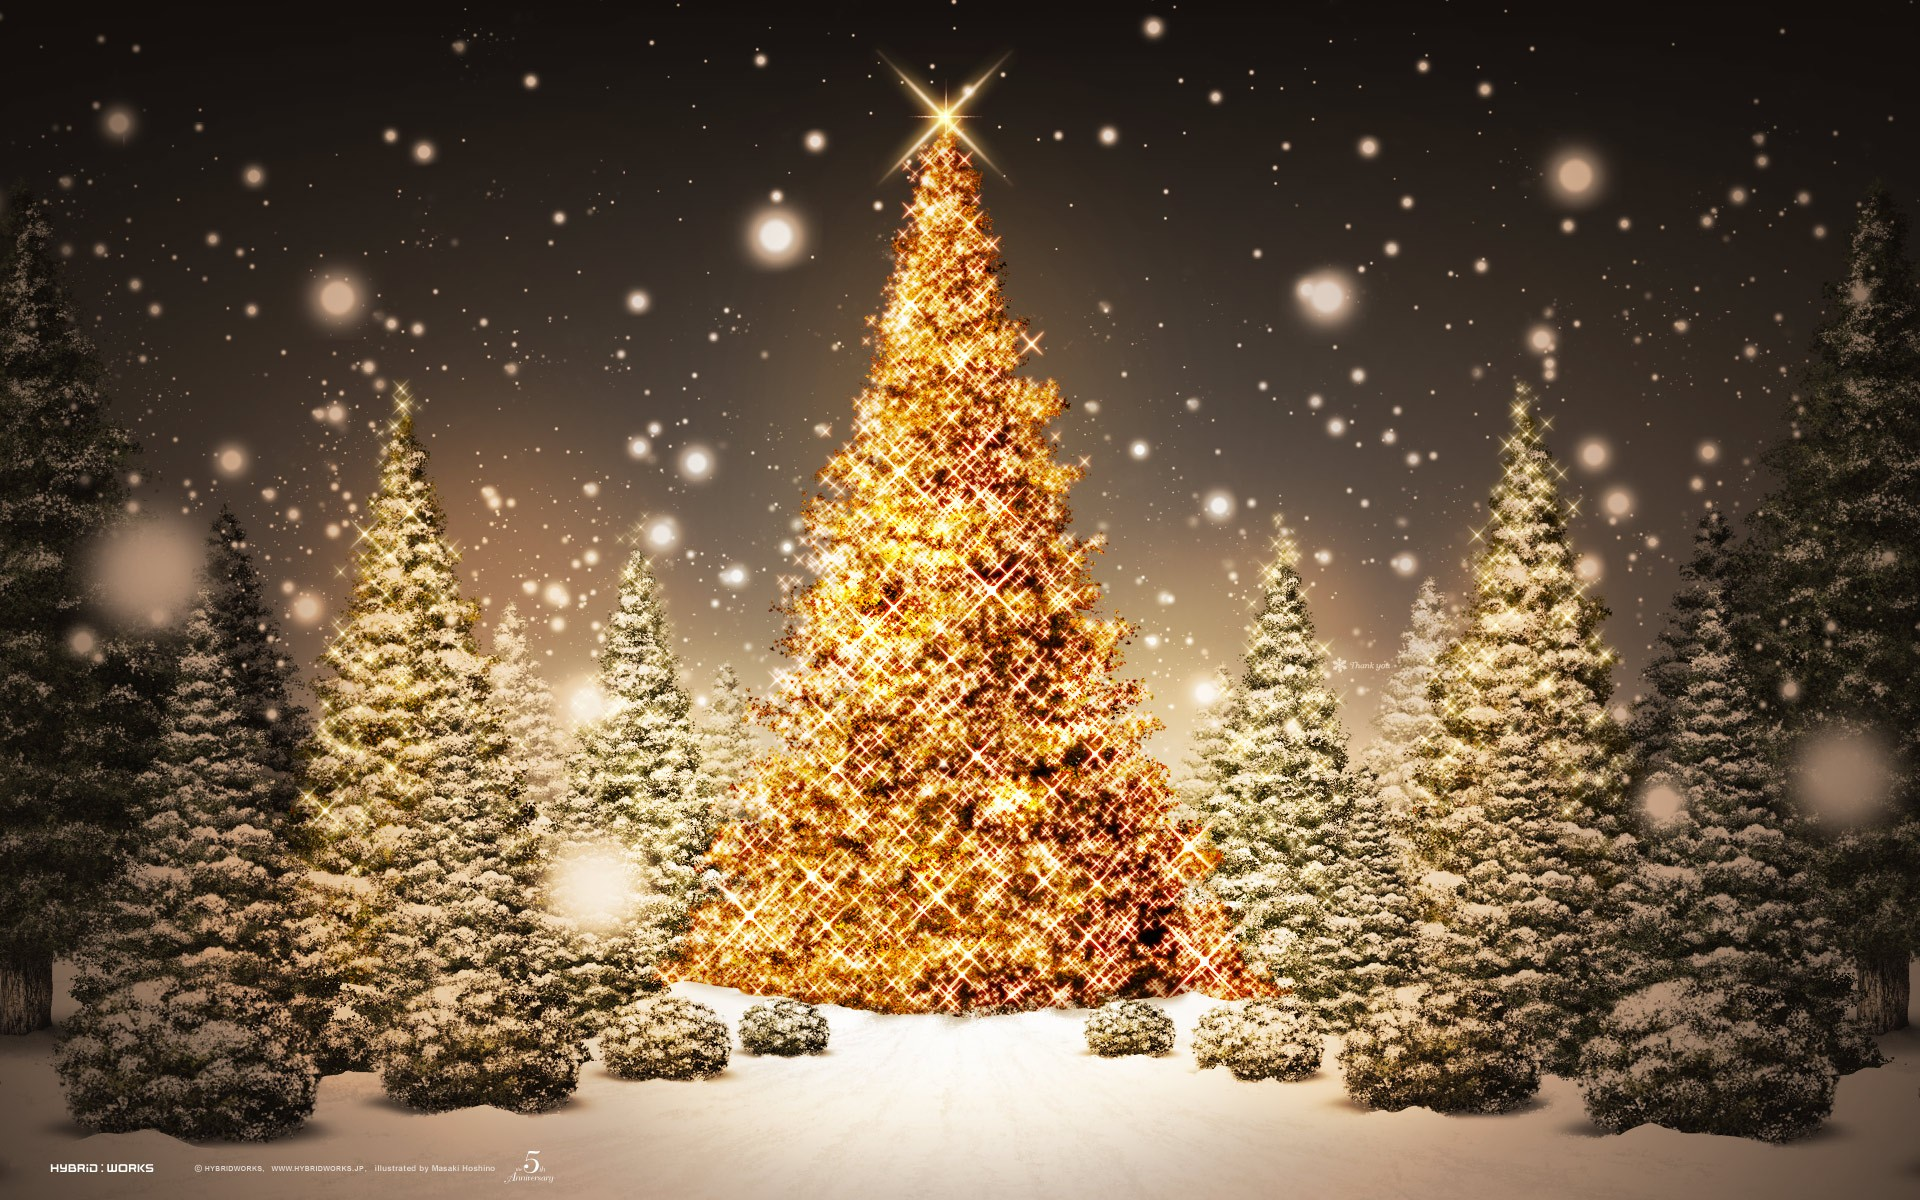 Christmas Tree Backgrounds.Christmas Tree Background Wallpaper 1920x1200 79330